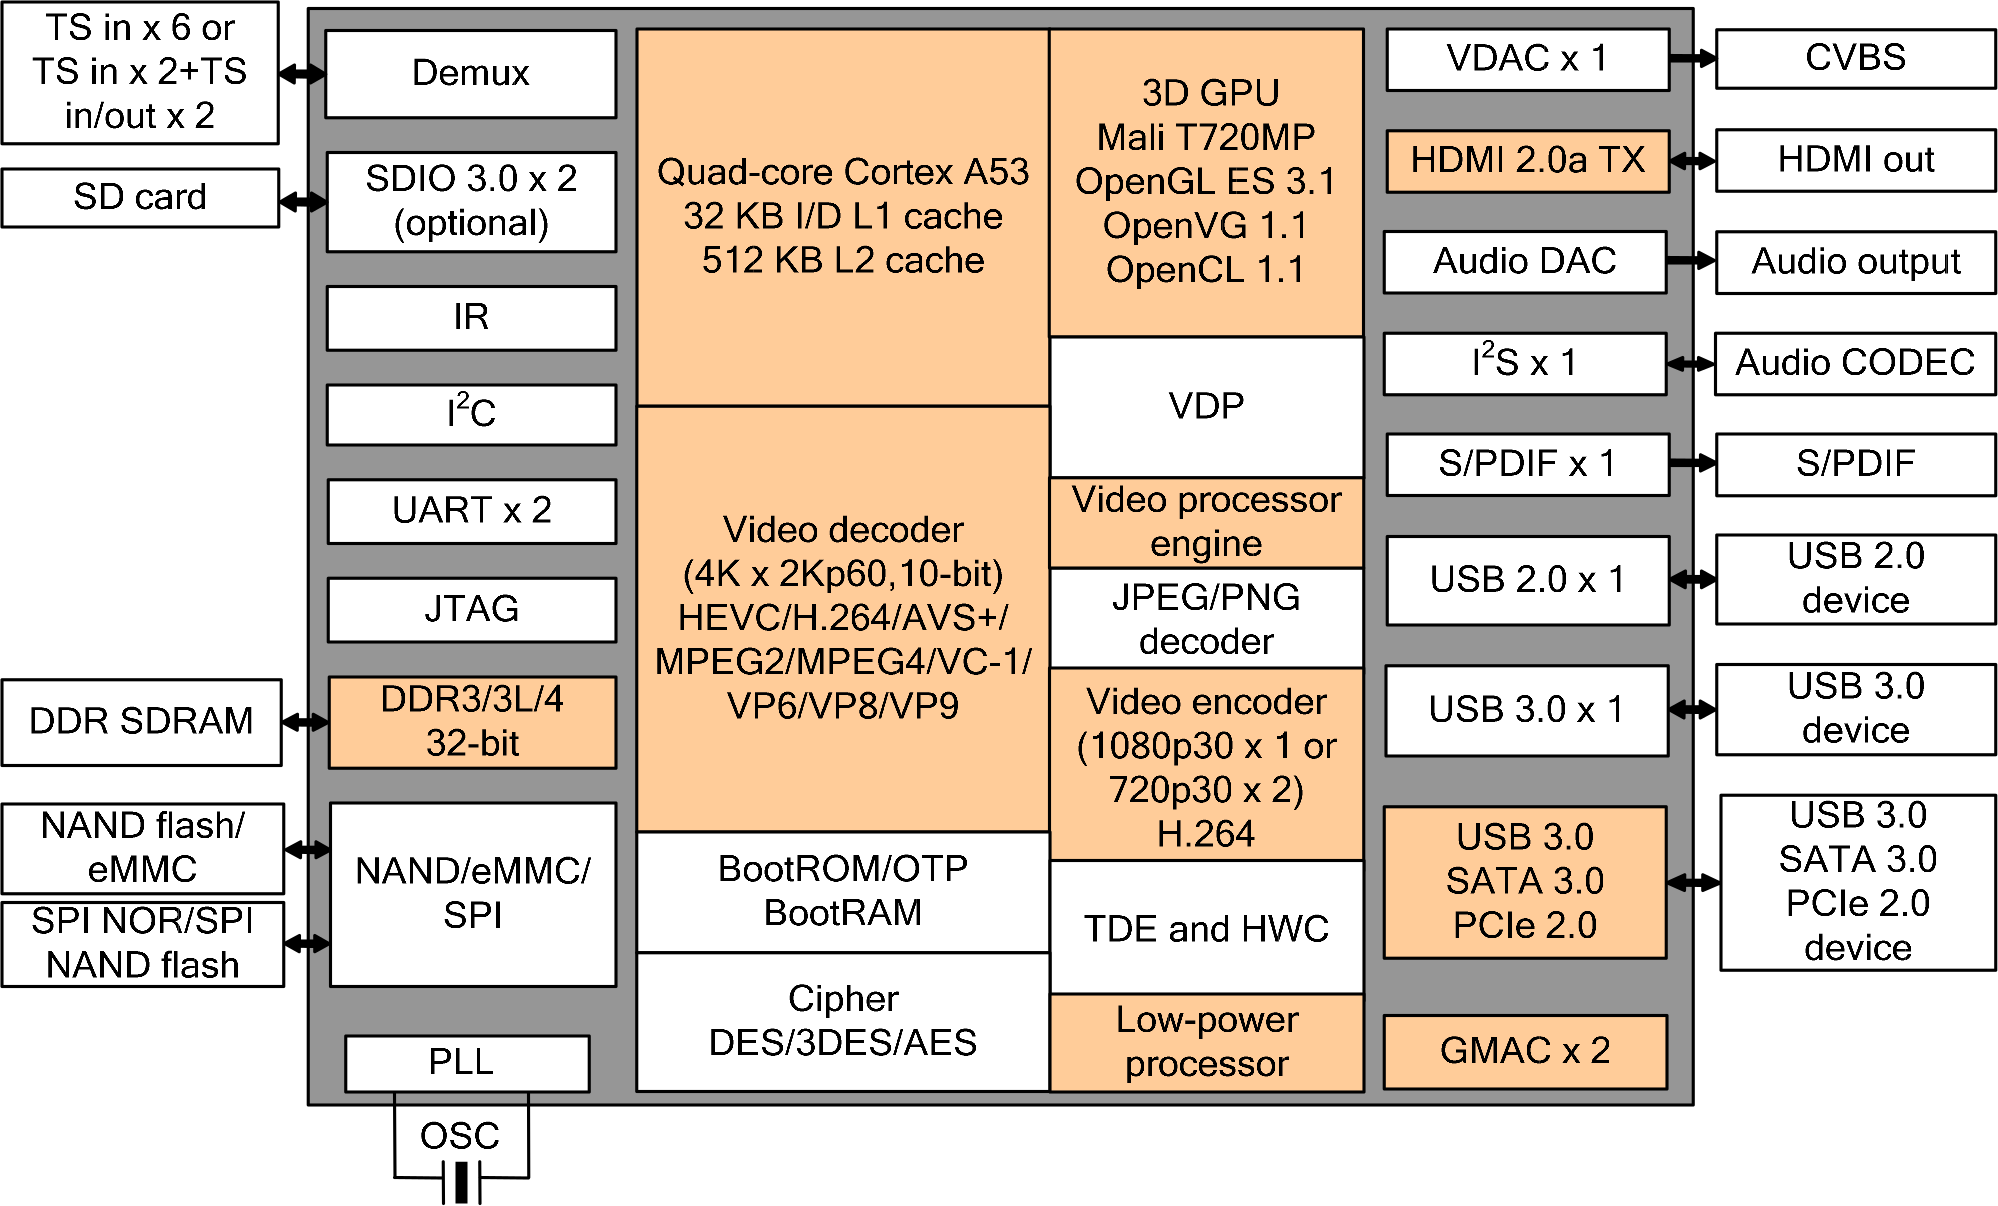 Hi3798C V200 Block Diagram – Click to Enlarge: www.cnx-software.com/tag/tocoding